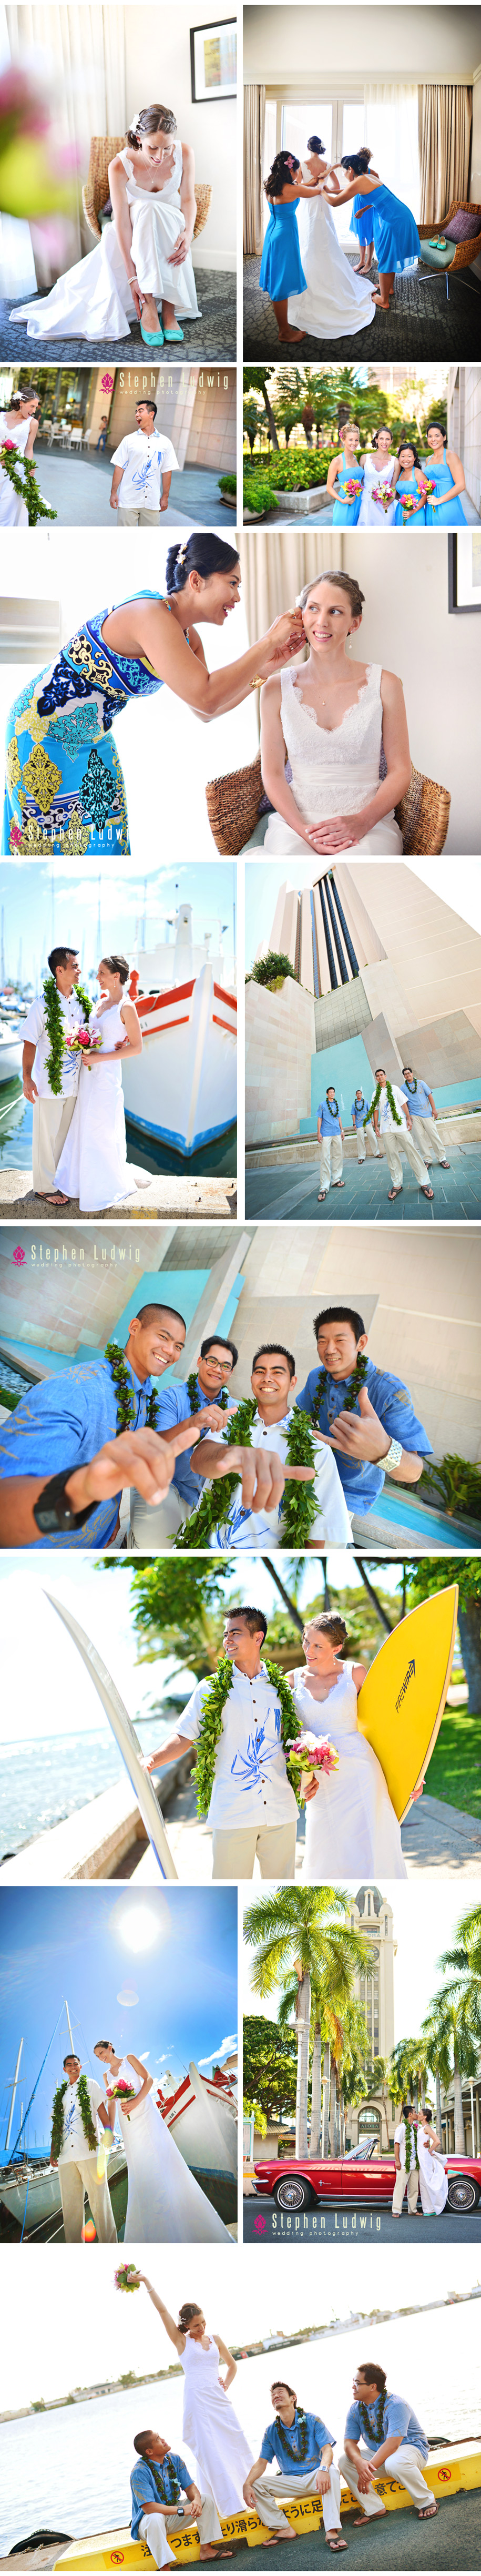 Anna-and-Zen-stephen-ludwig-wedding-photography-hawaii-2